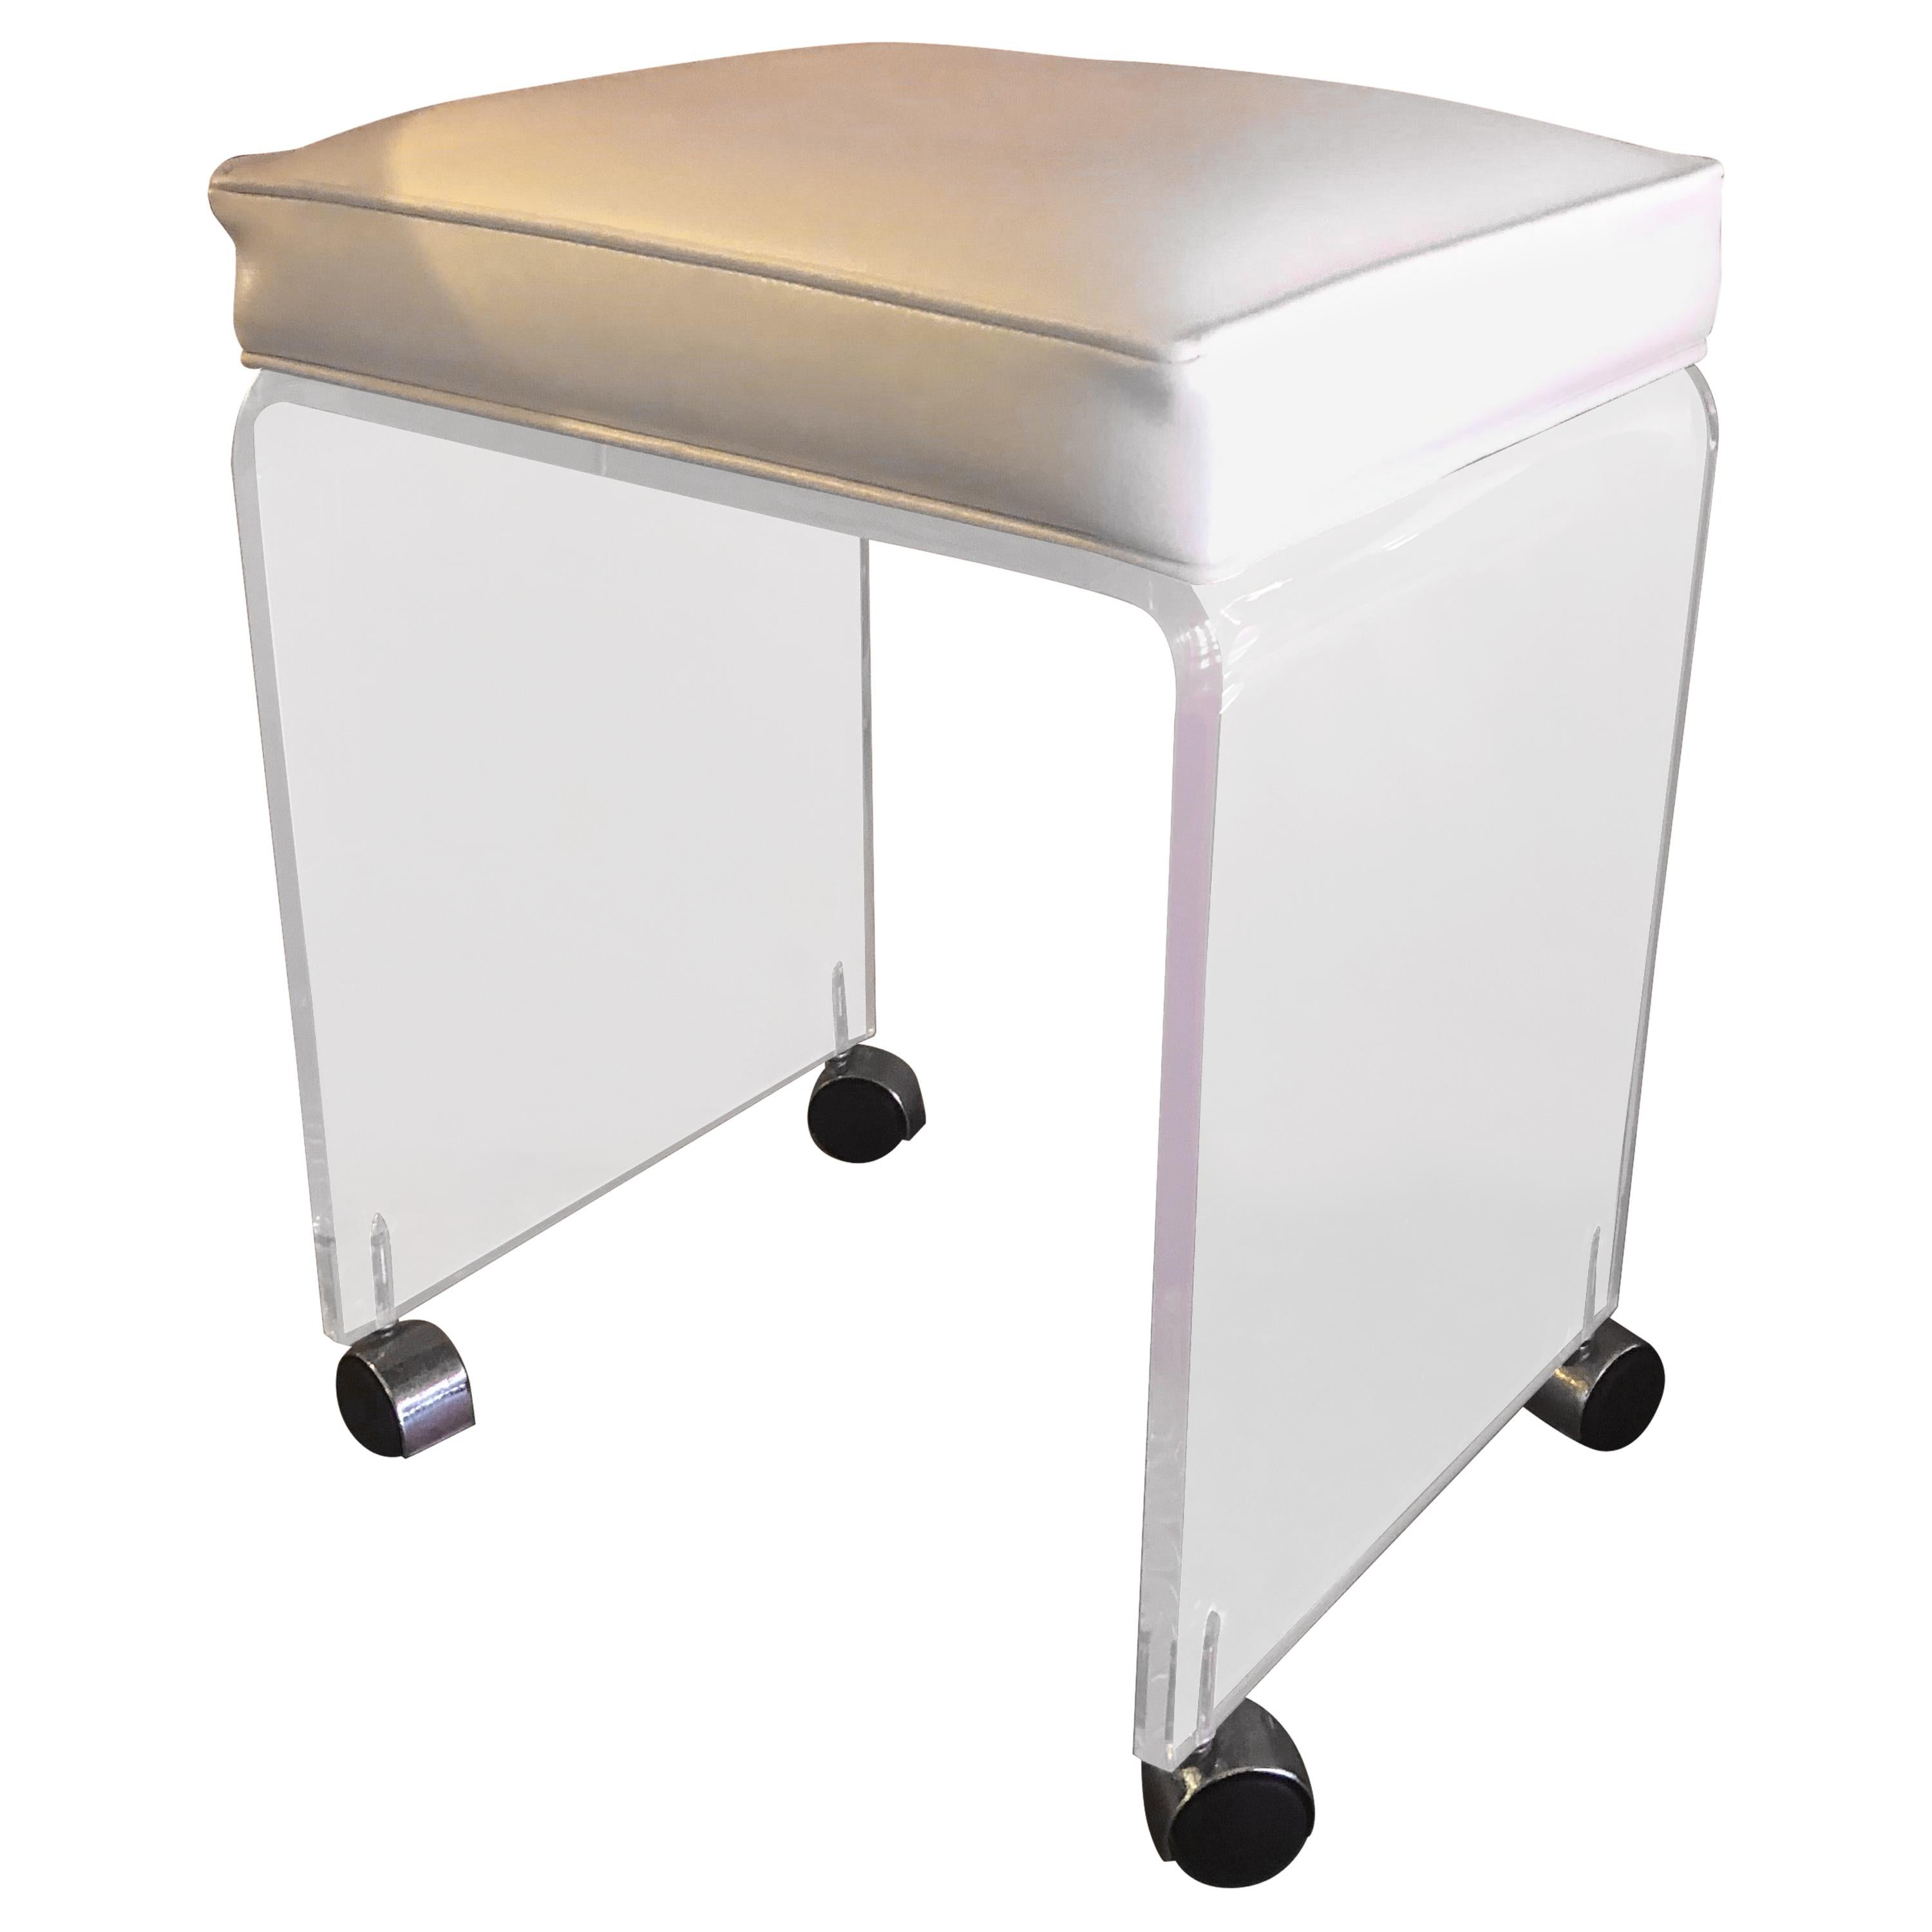 Postmodern Waterfall Lucite Vanity Stool or Bench with White Seat by Akko